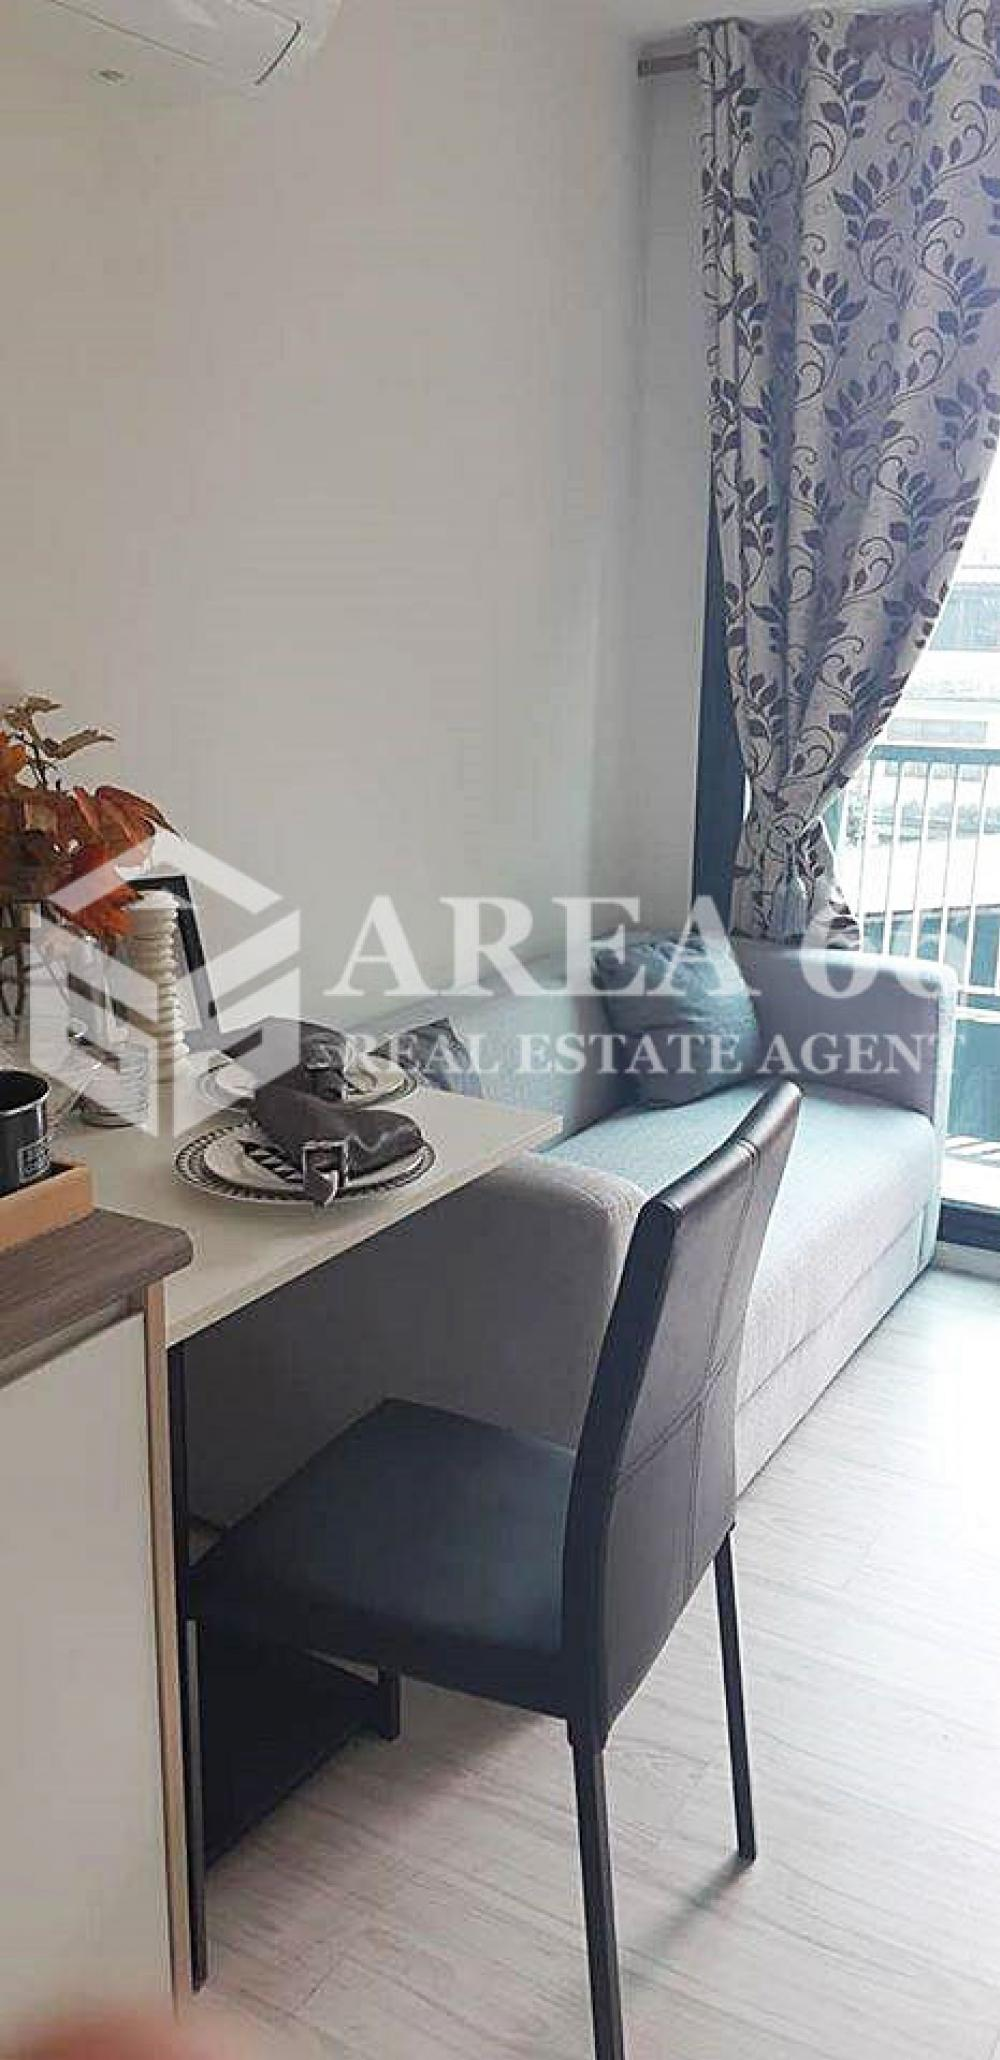 For RentCondoLadprao 48, Chokchai 4, Ladprao 71 : ⭐ For rent, My Story Ladprao 71, the best condo in Soi Ladprao 71, connecting many main roads.